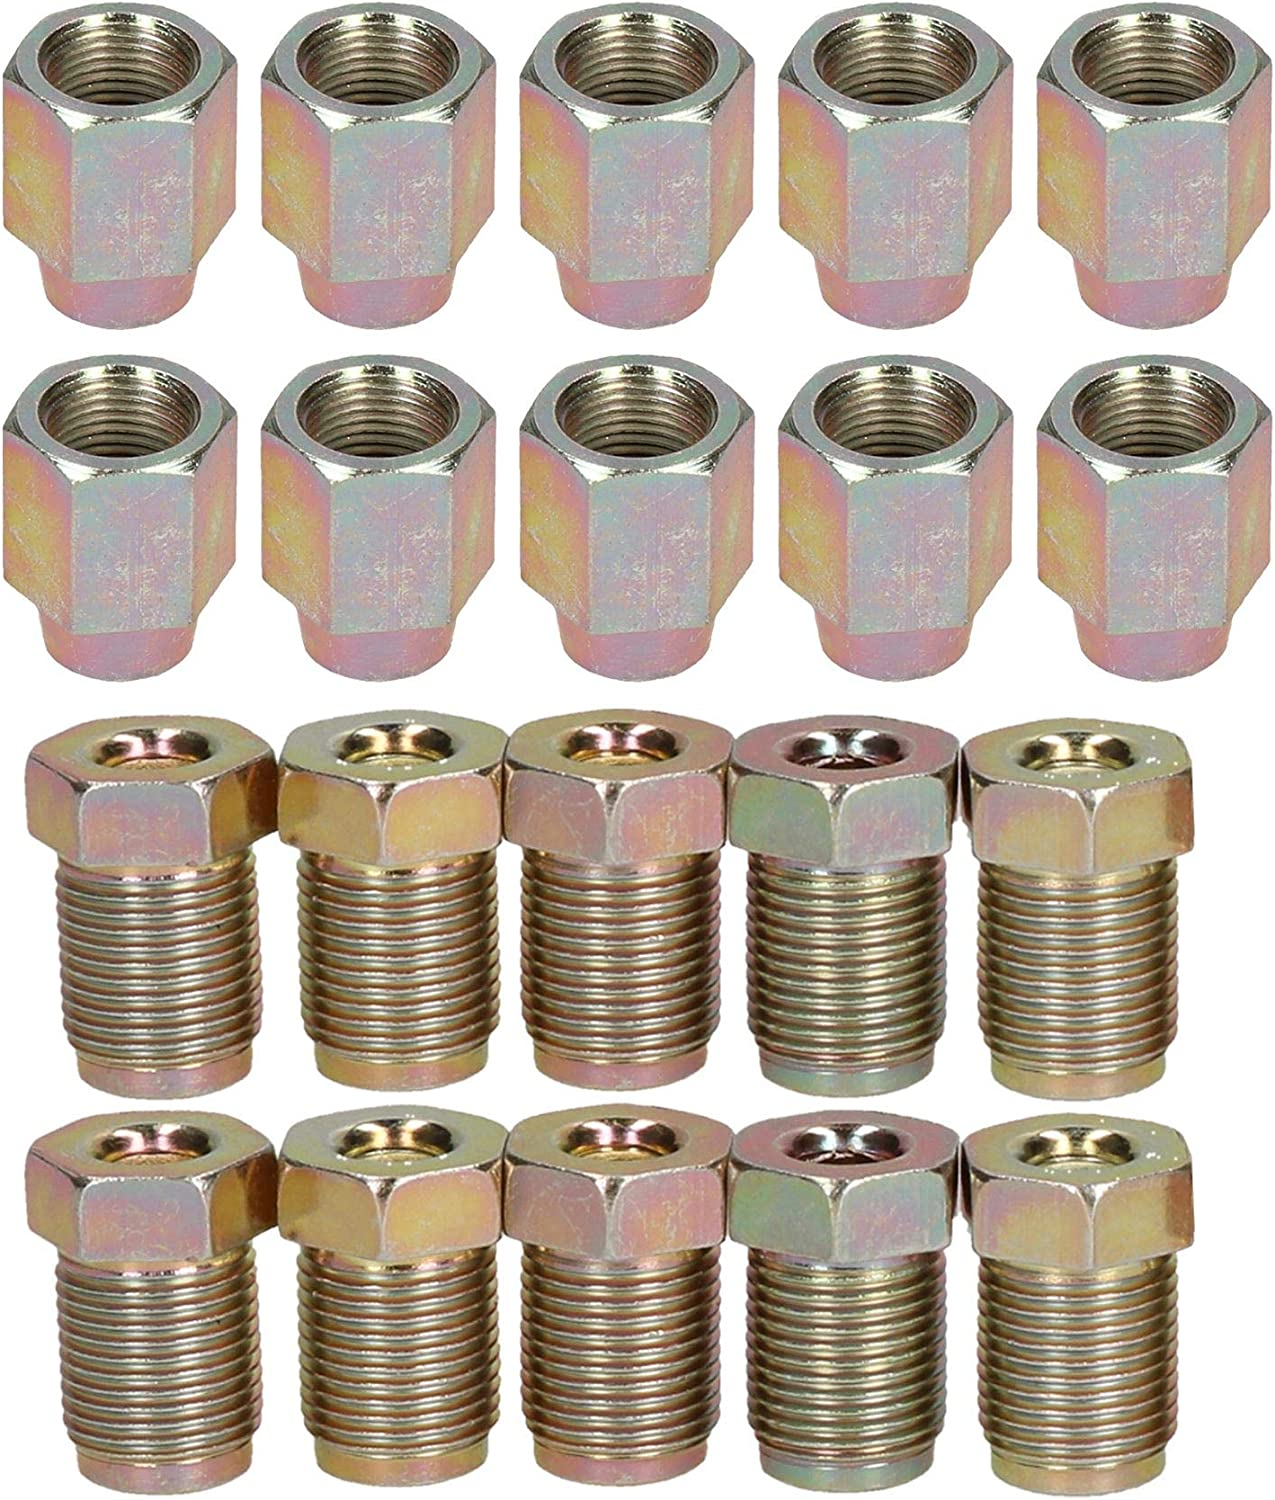 "AB Tools-Bond 7//16/"" x 20 UNF Male and Female Steel Brake Pipe Fittings for 3//16/"" Pipe 20 Pack"